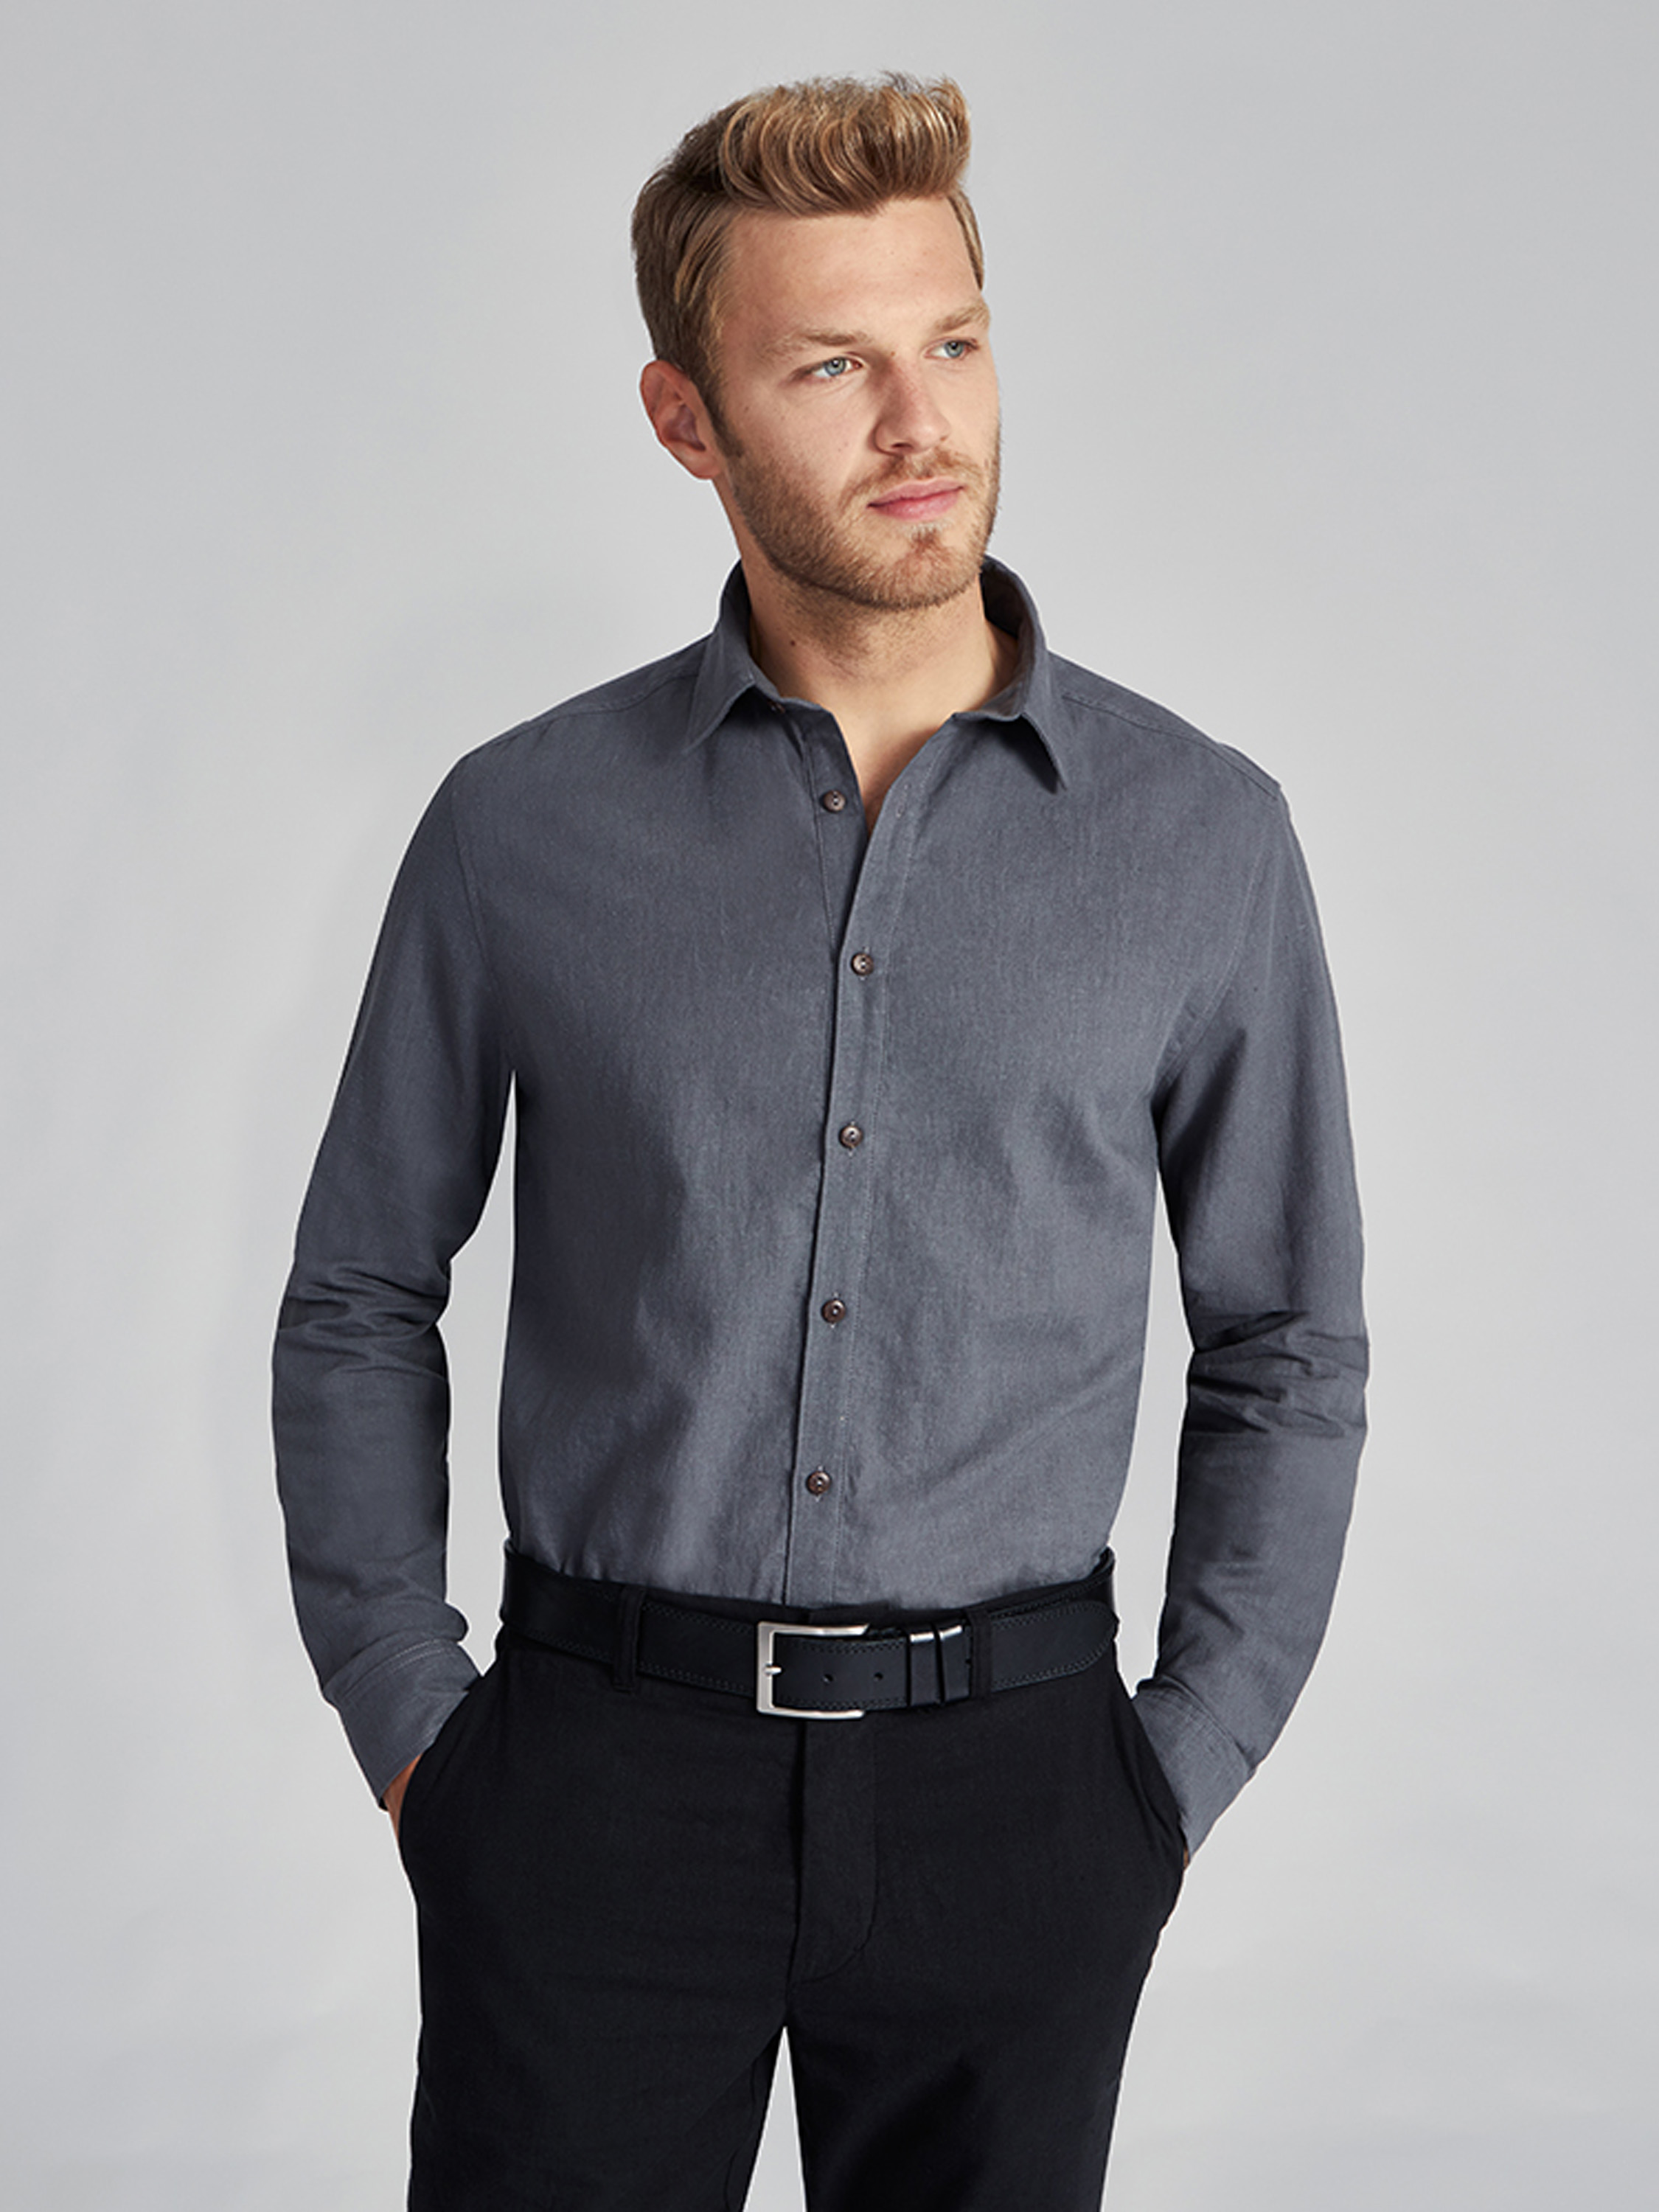 Lightweight and classic shirt